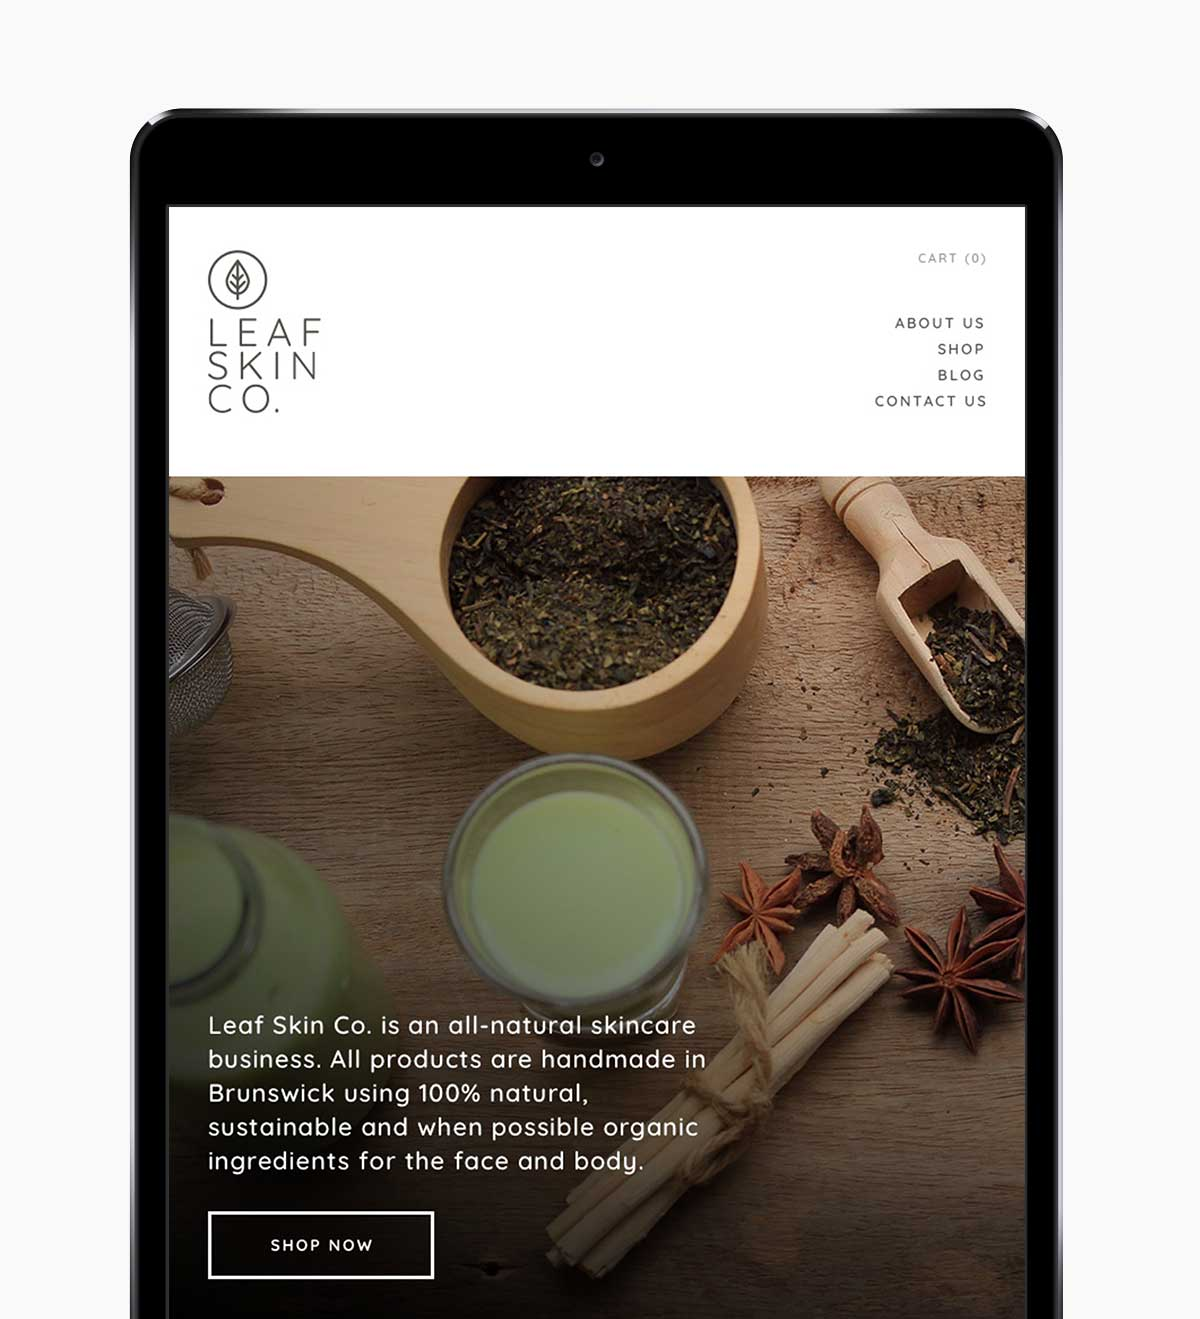 Leaf Skin Co. responsive website on iPad in portrait view